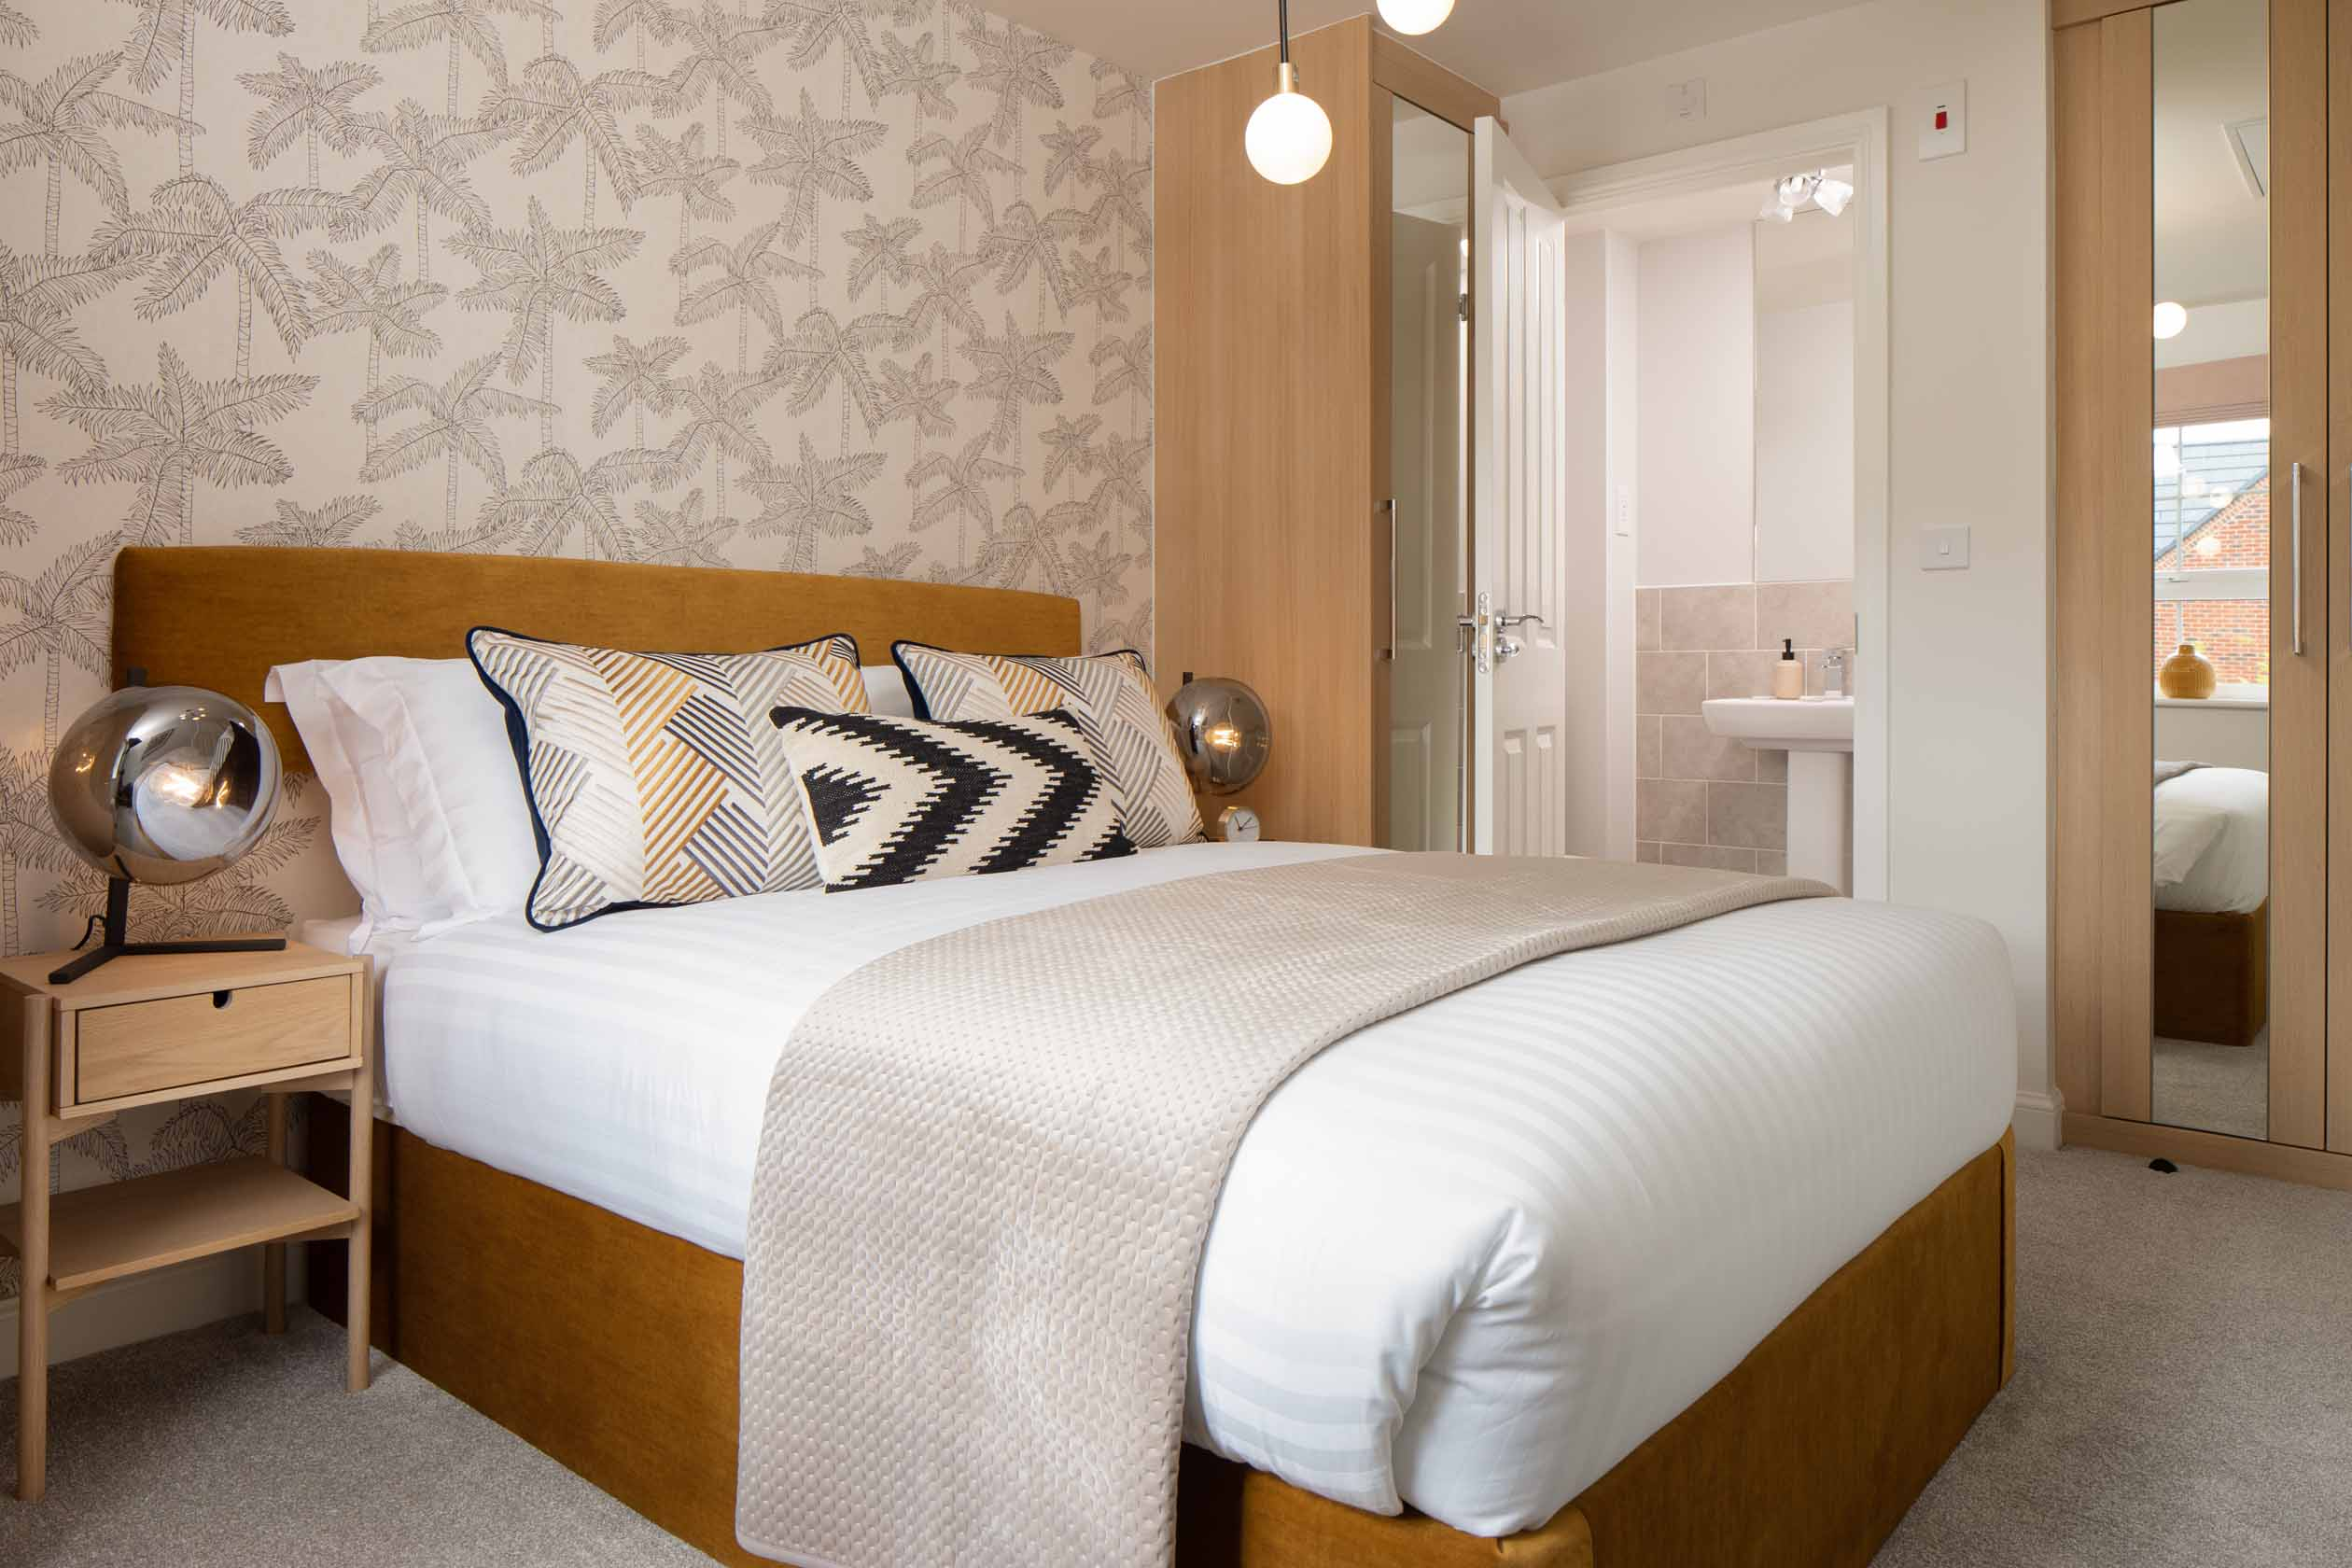 Barwick internal main bedroom and en suite, barratt homes, orchard green, kingsbrook